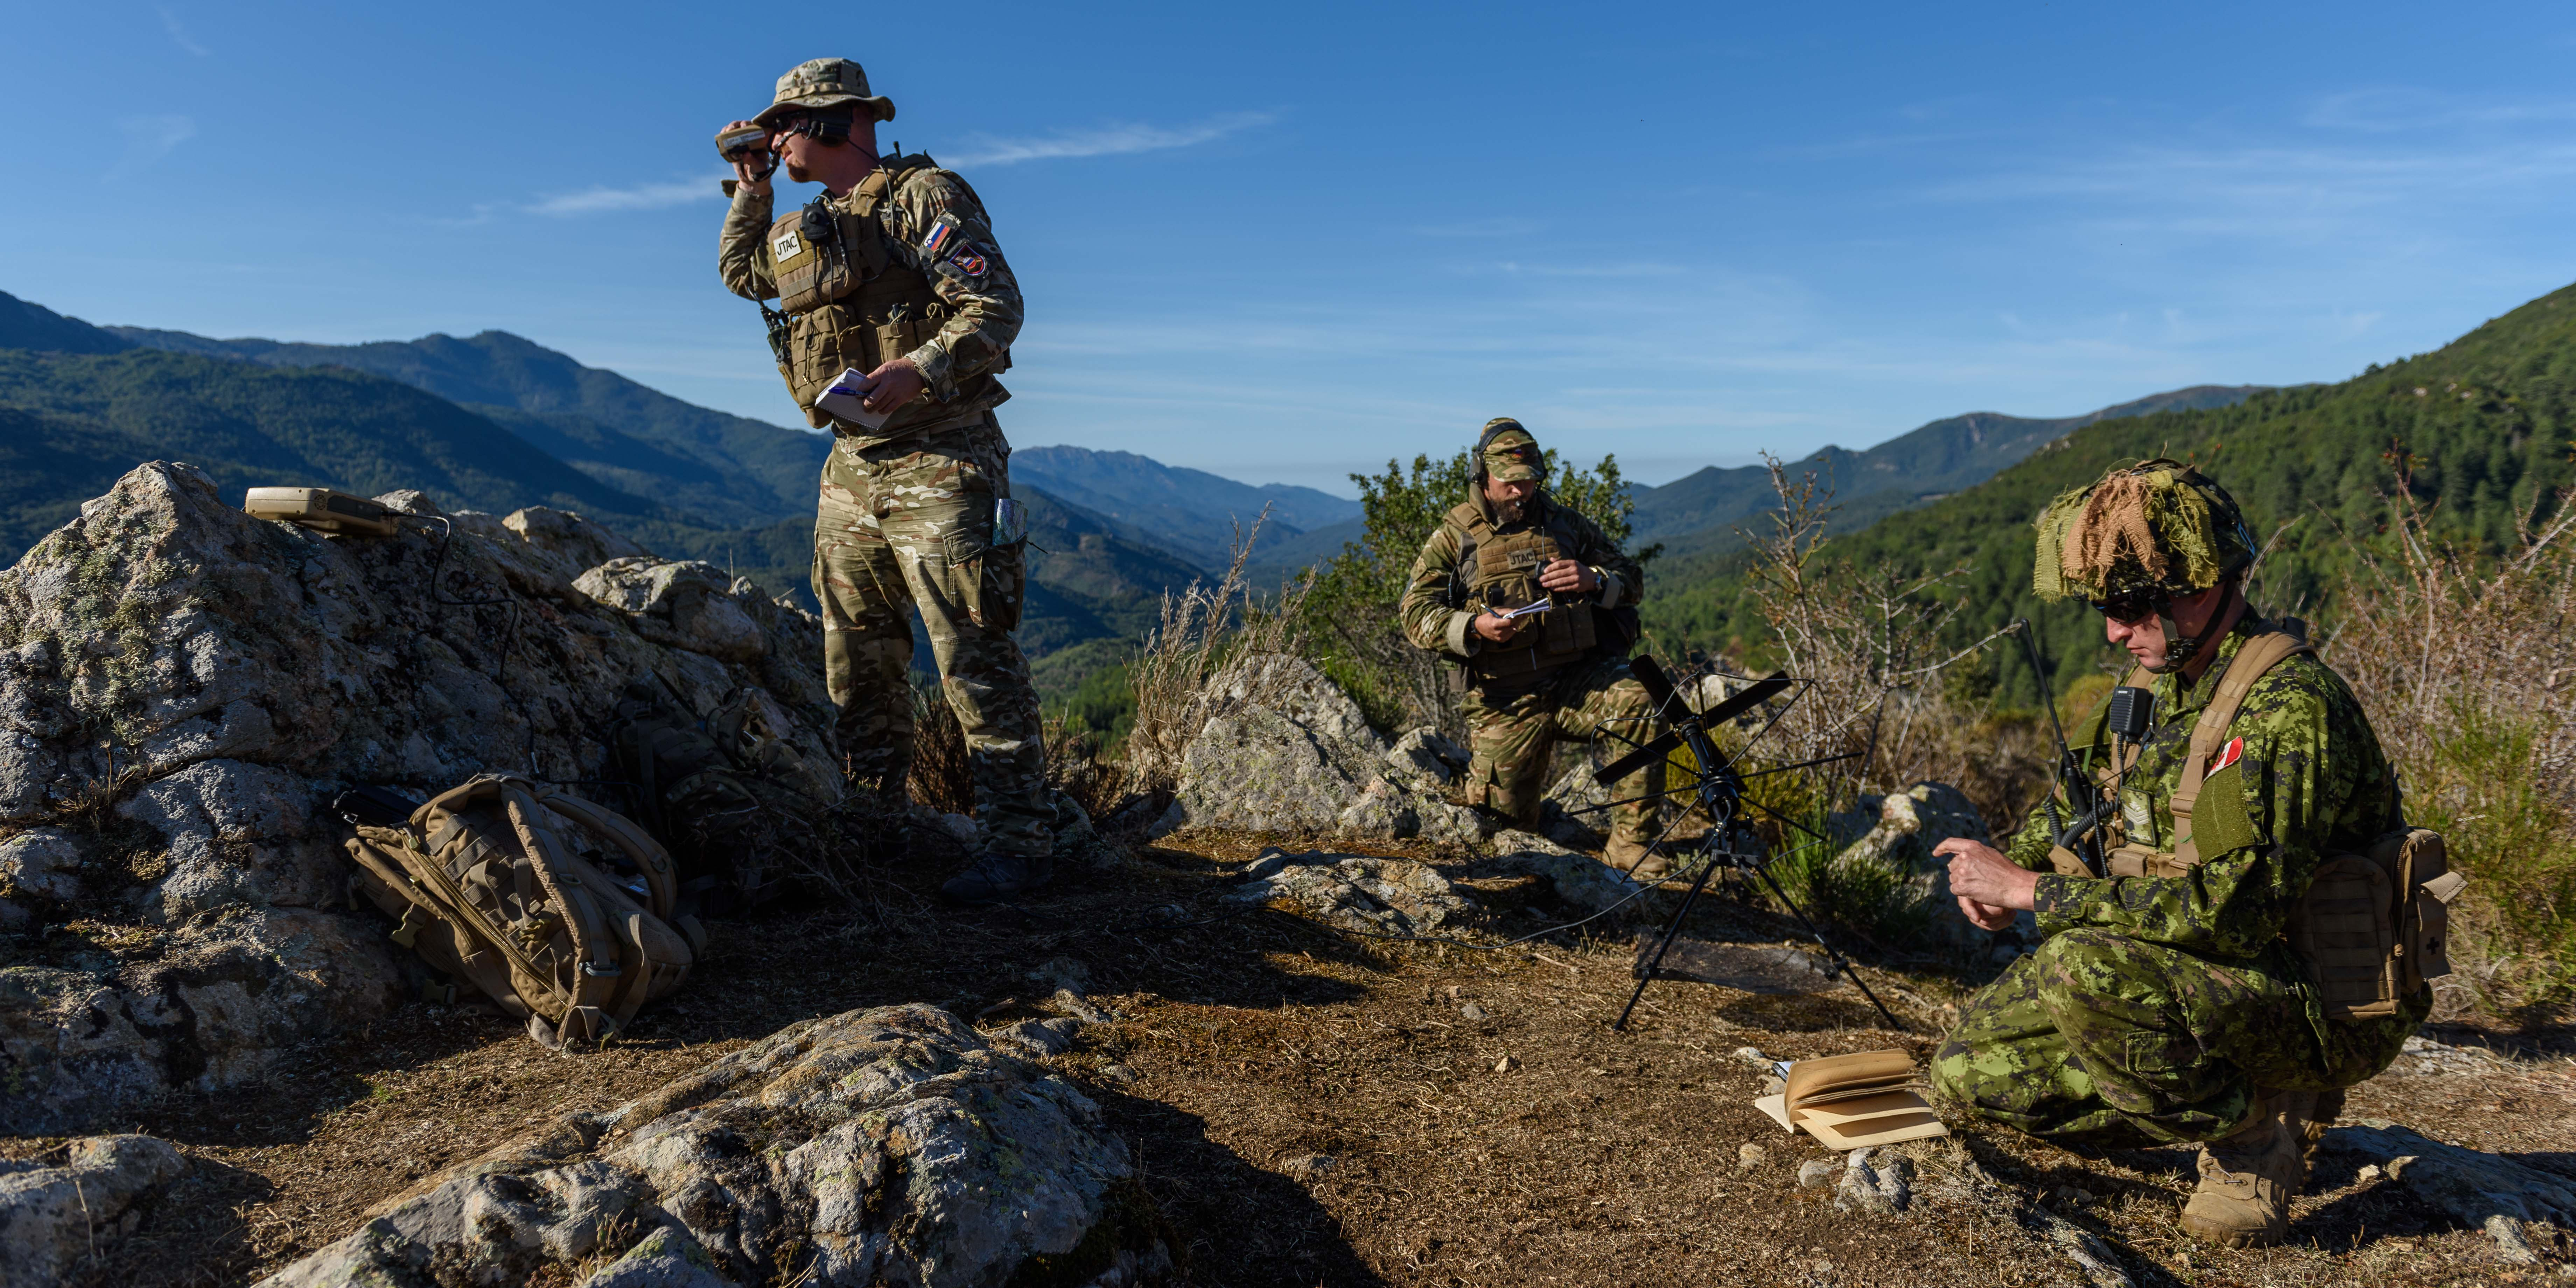 On September 22, 2017, Sergeant Tyler Syme observes the Slovenian joint terminal air controller team's procedures near the town of Ciamannacce in Corsica during SERPENTEX 2017. PHOTO: Master Corporal Louis Brunet, BN53-2017-0006-016